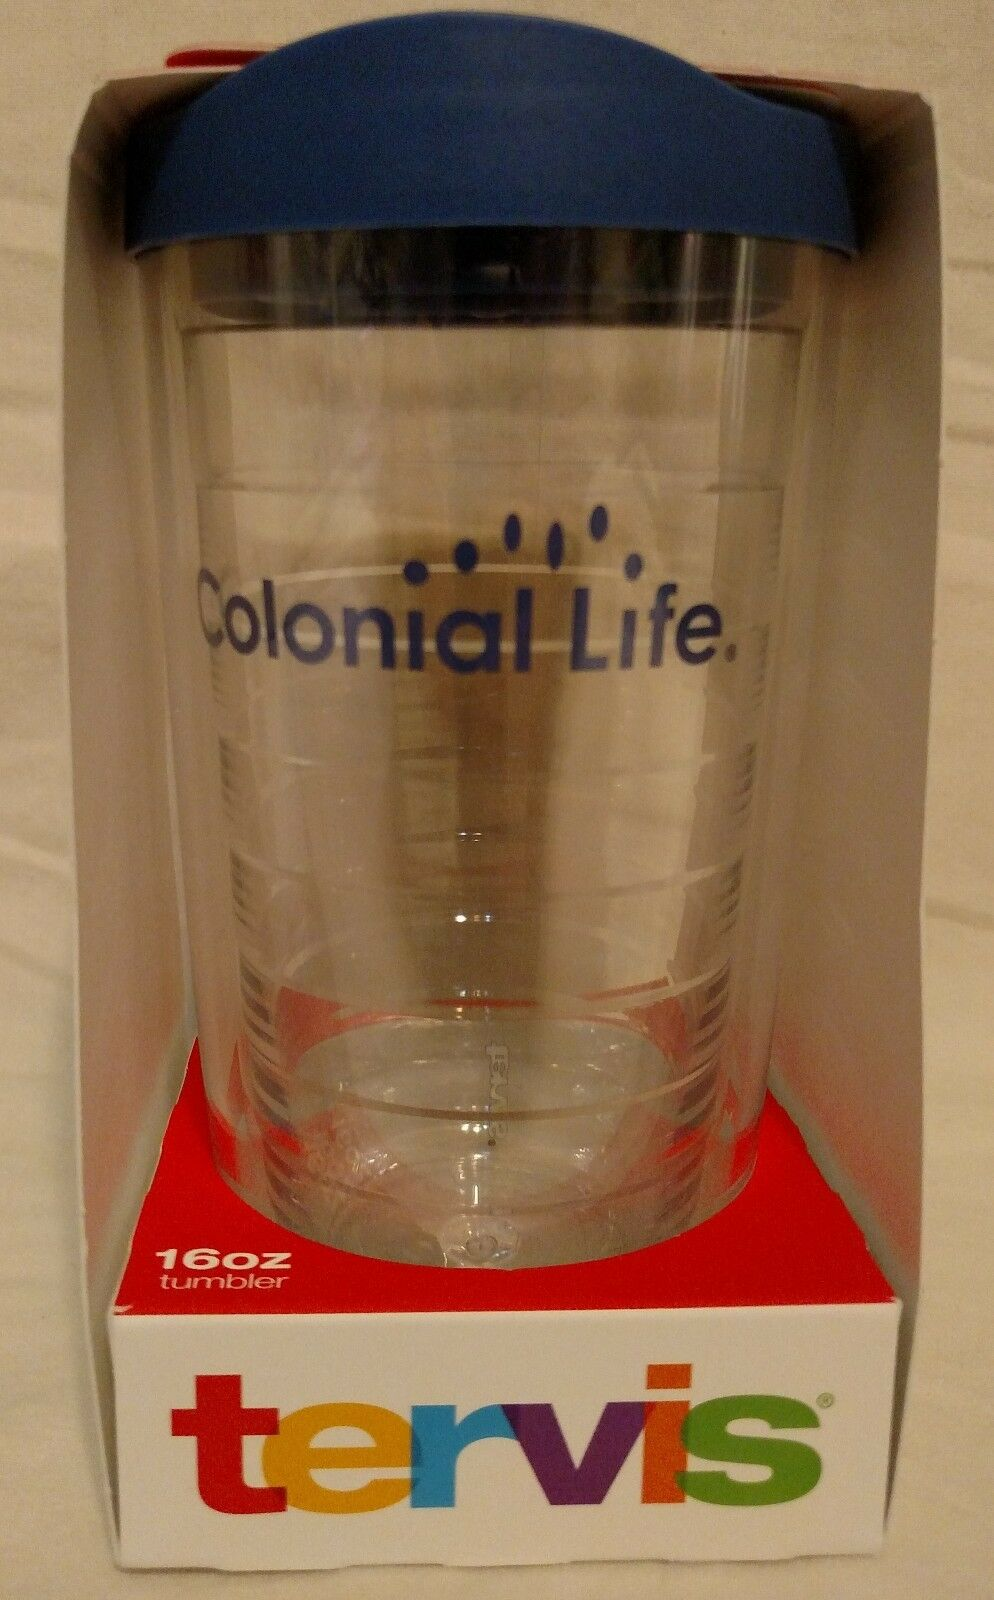 Colonial Life, Tervis 16oz Insulated Travel Cup, New!!!